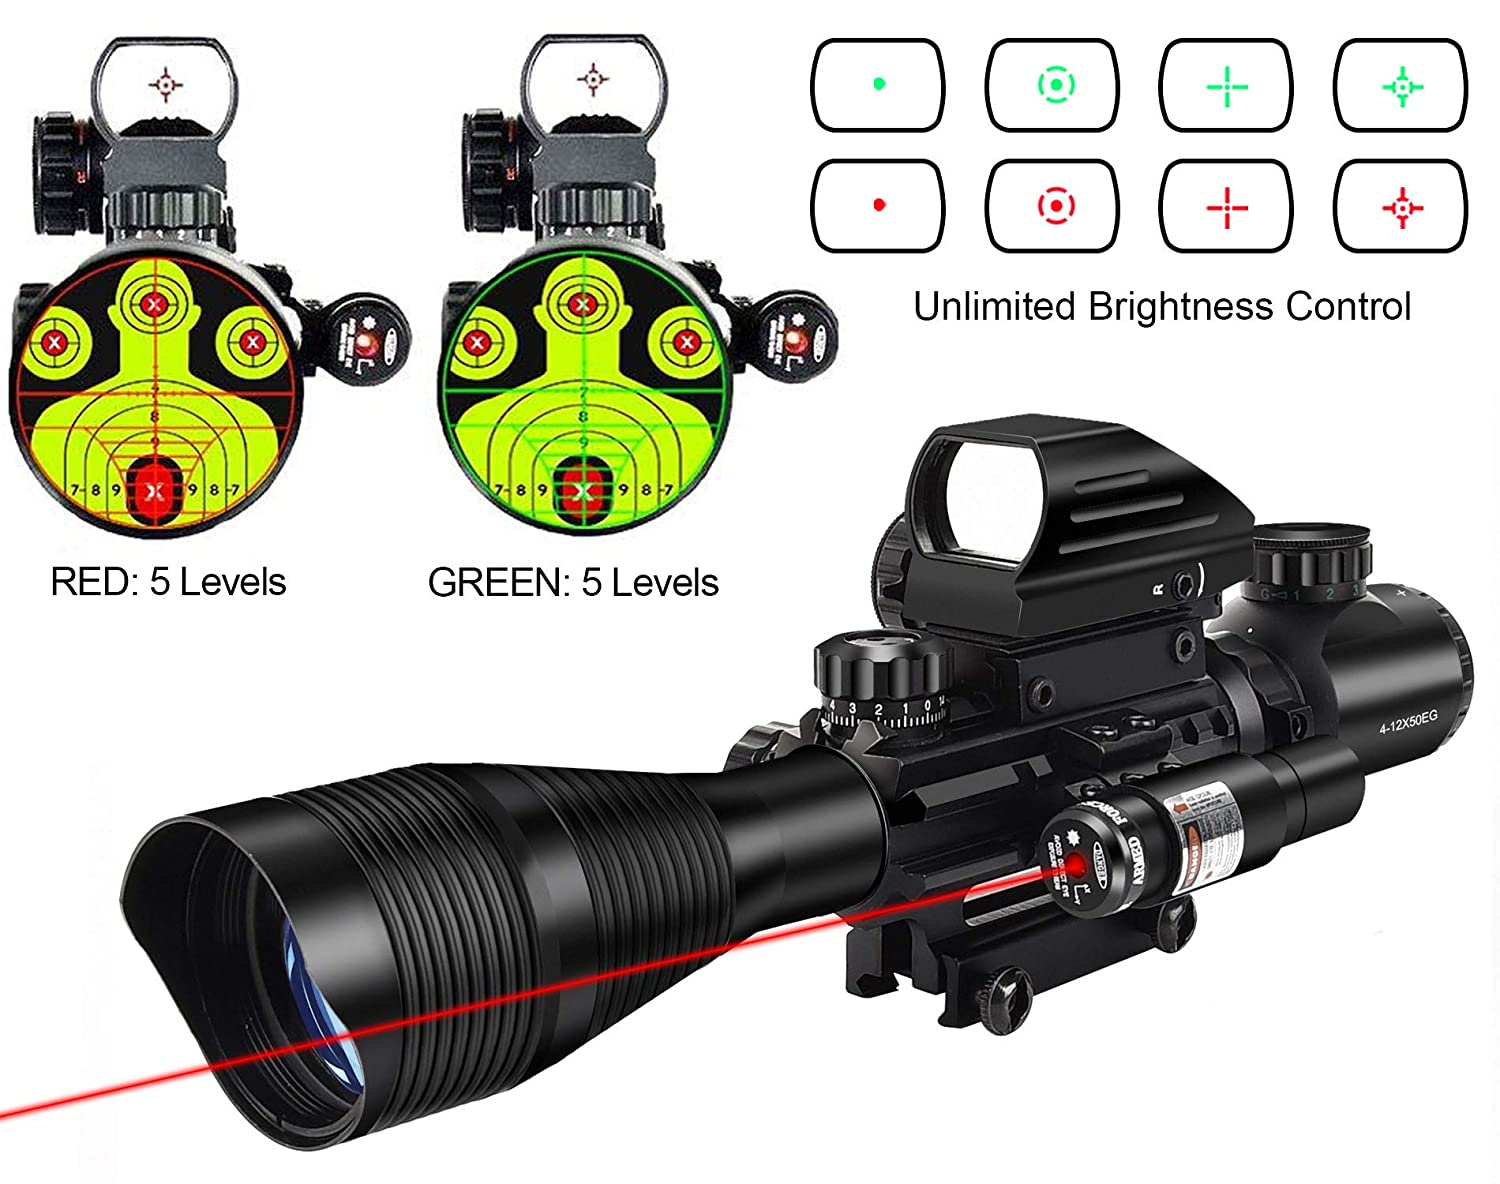 8.MidTen 4-12x50 Dual Illuminated Scope